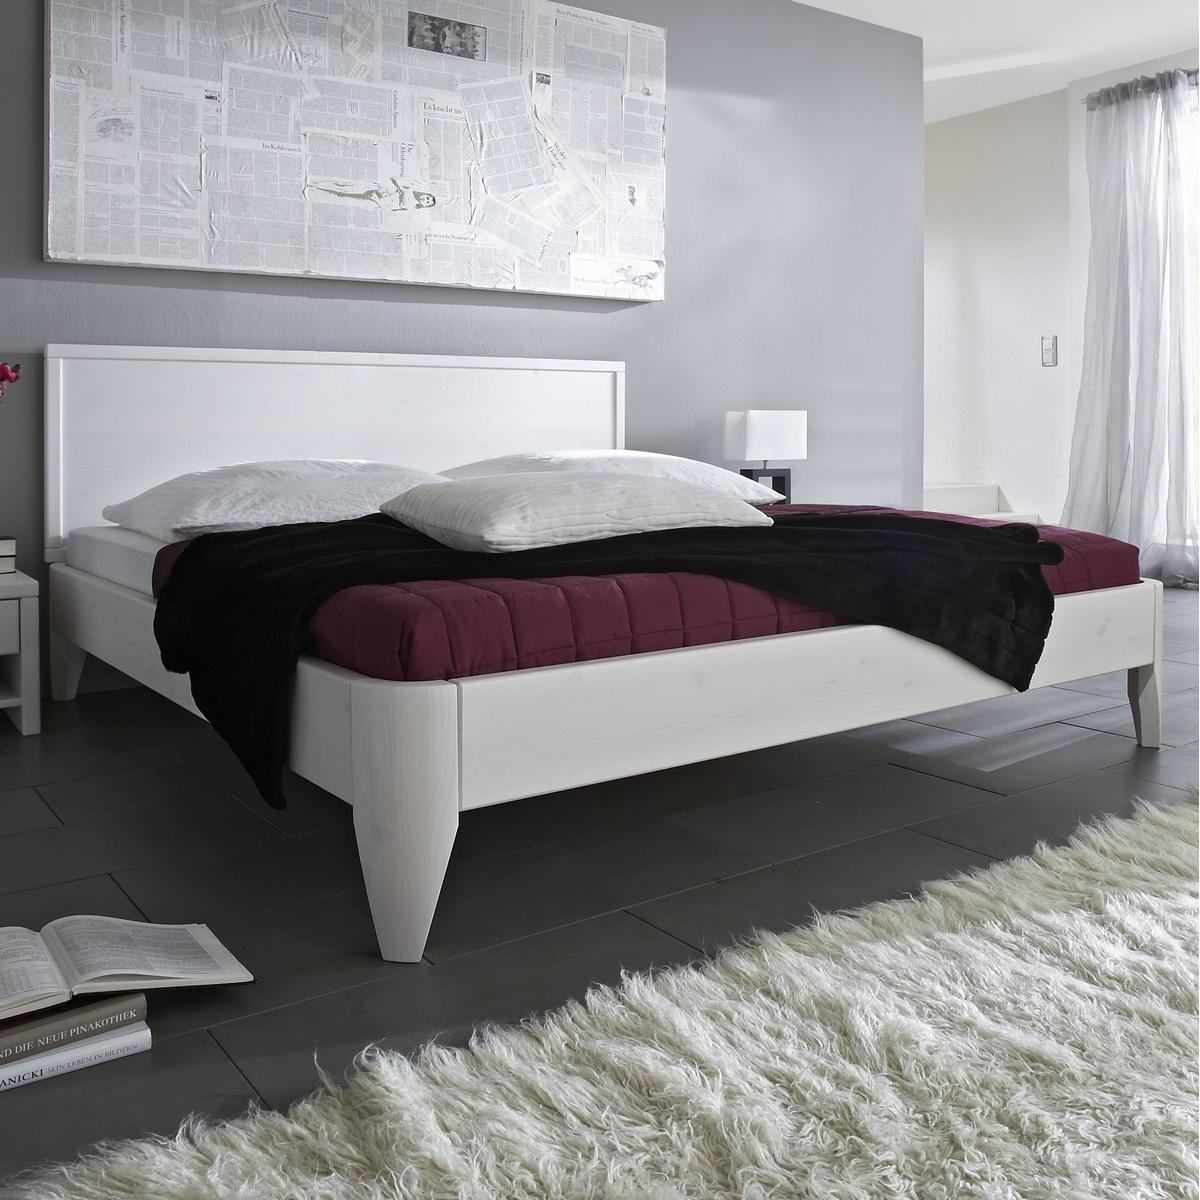 massivholz bett 160x200 easy sleep kiefer massiv wei lackiert 9316 72 0. Black Bedroom Furniture Sets. Home Design Ideas